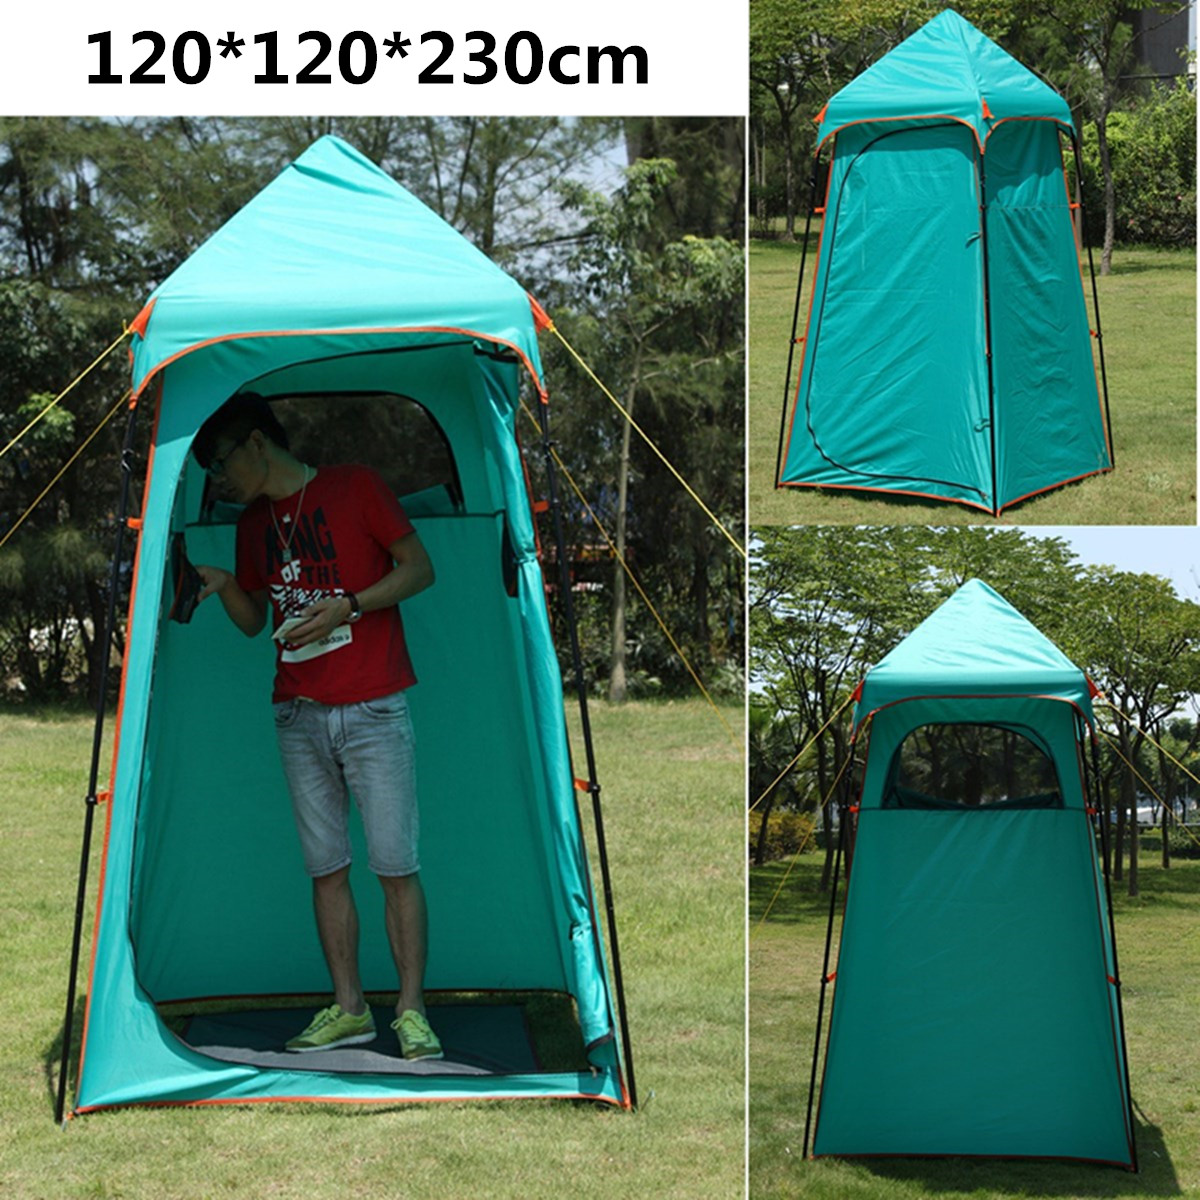 Portable Outdoor Shower Bath Tent Beach Toilet Fitting Room Shelter Travel Fishing Tents